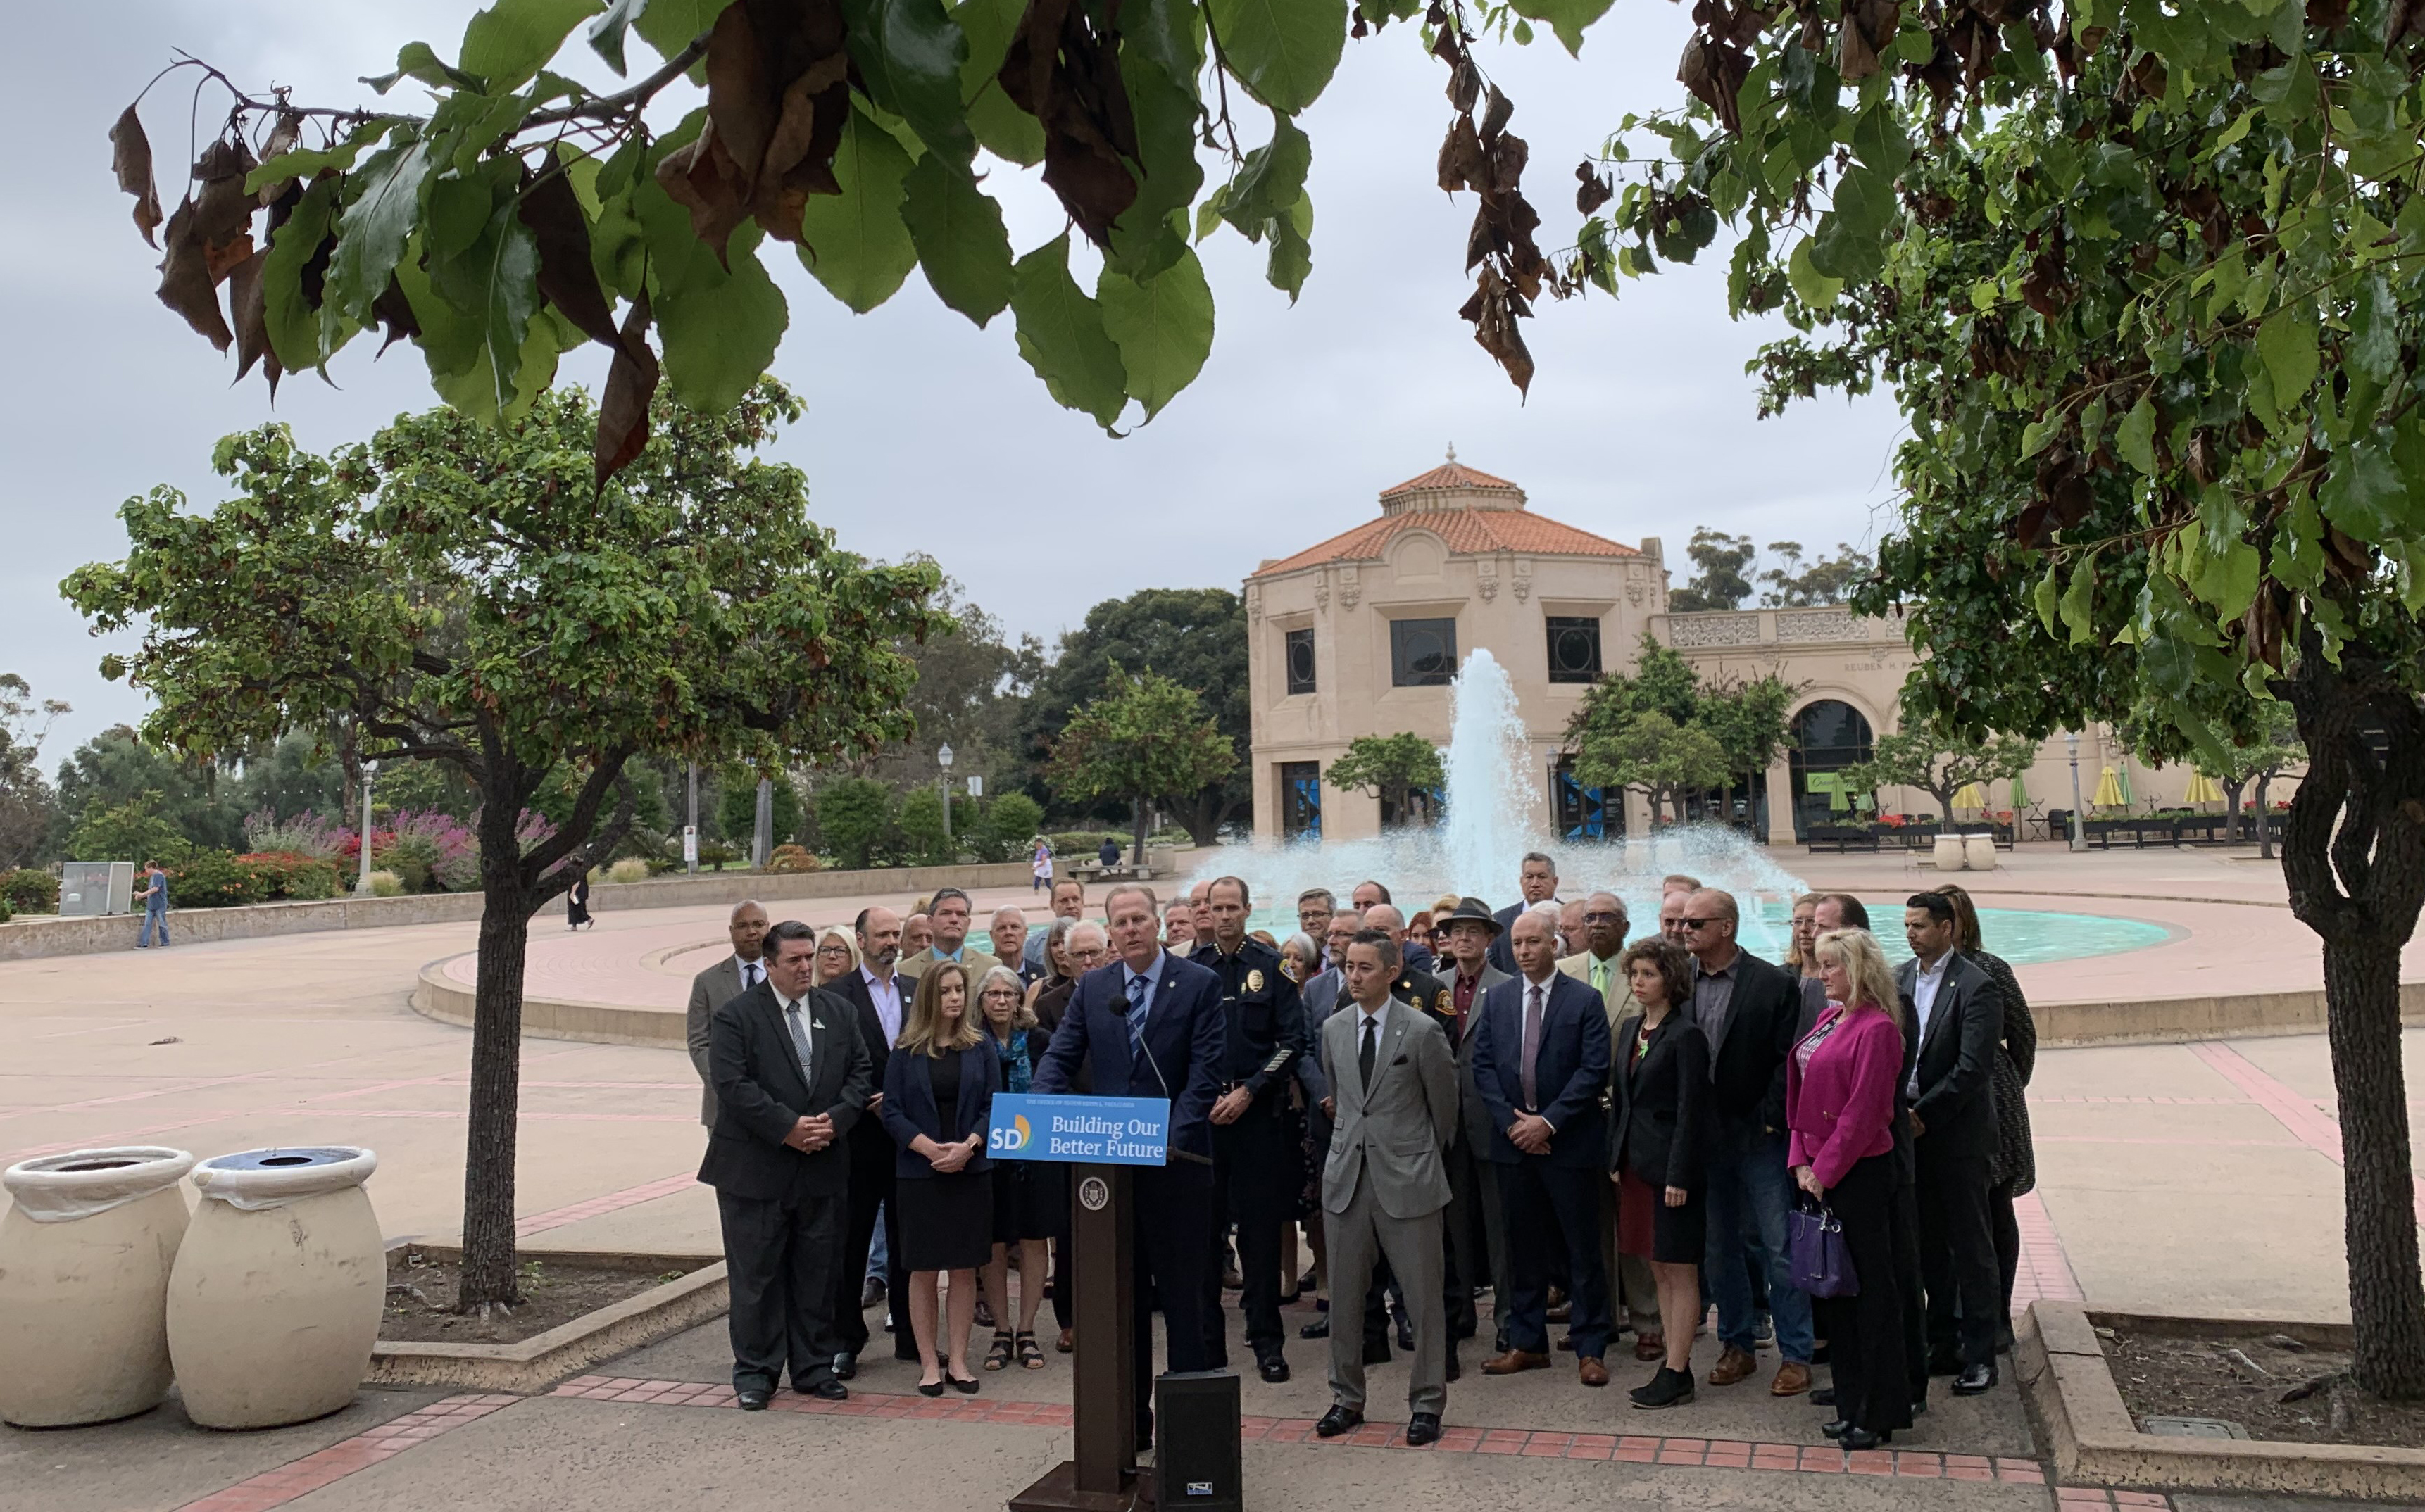 Balboa Park FY2020 May Revise Press Conference